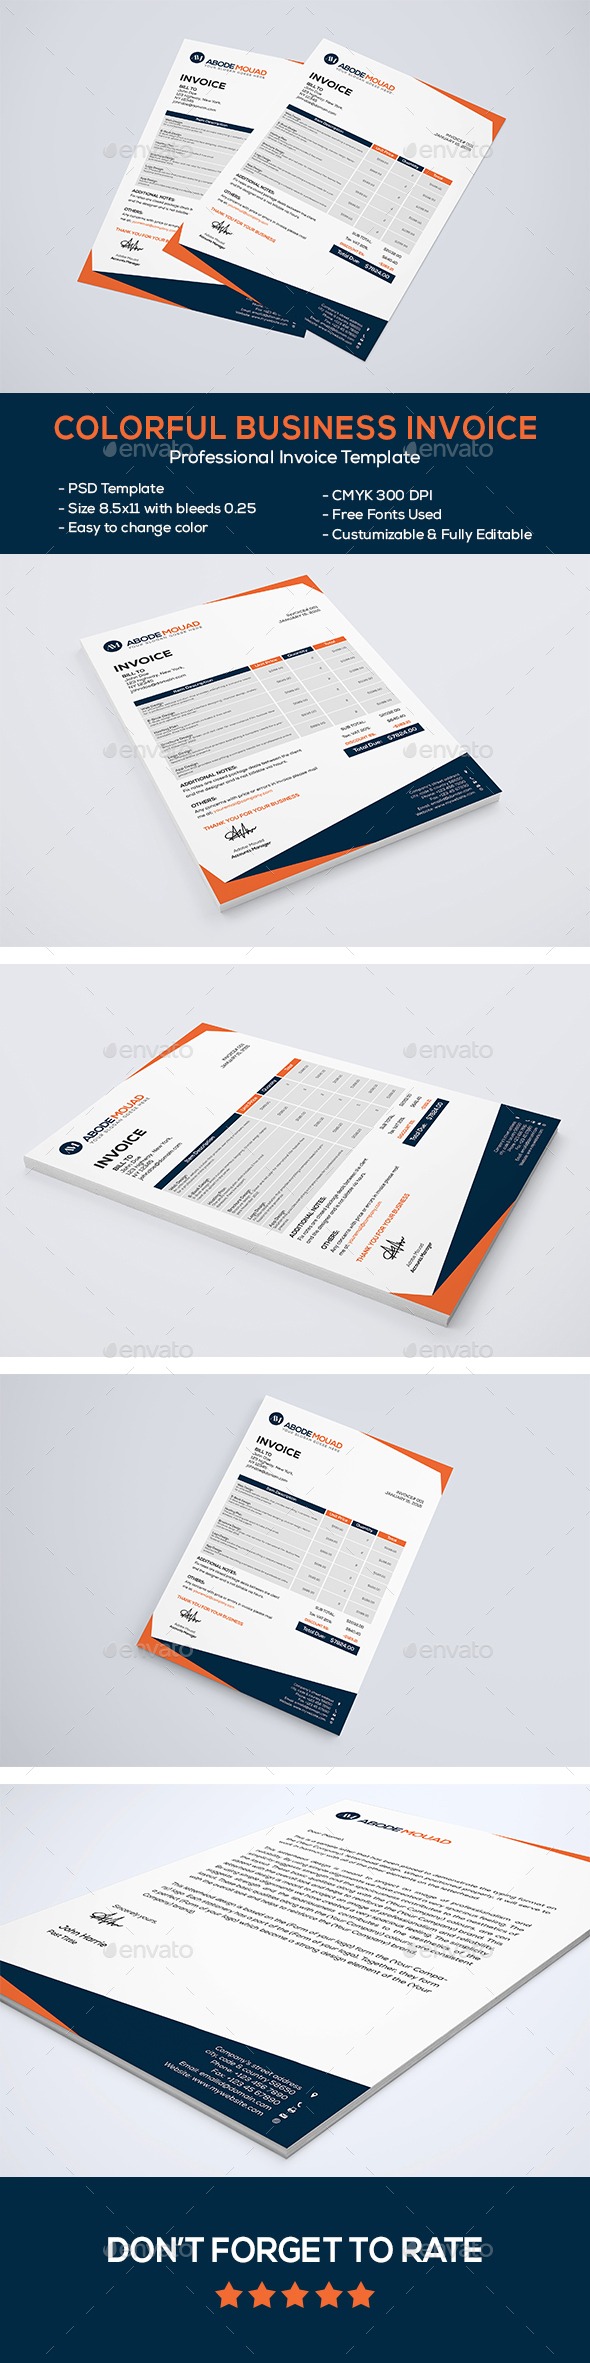 Colorful Business Letterhead - Proposals & Invoices Stationery